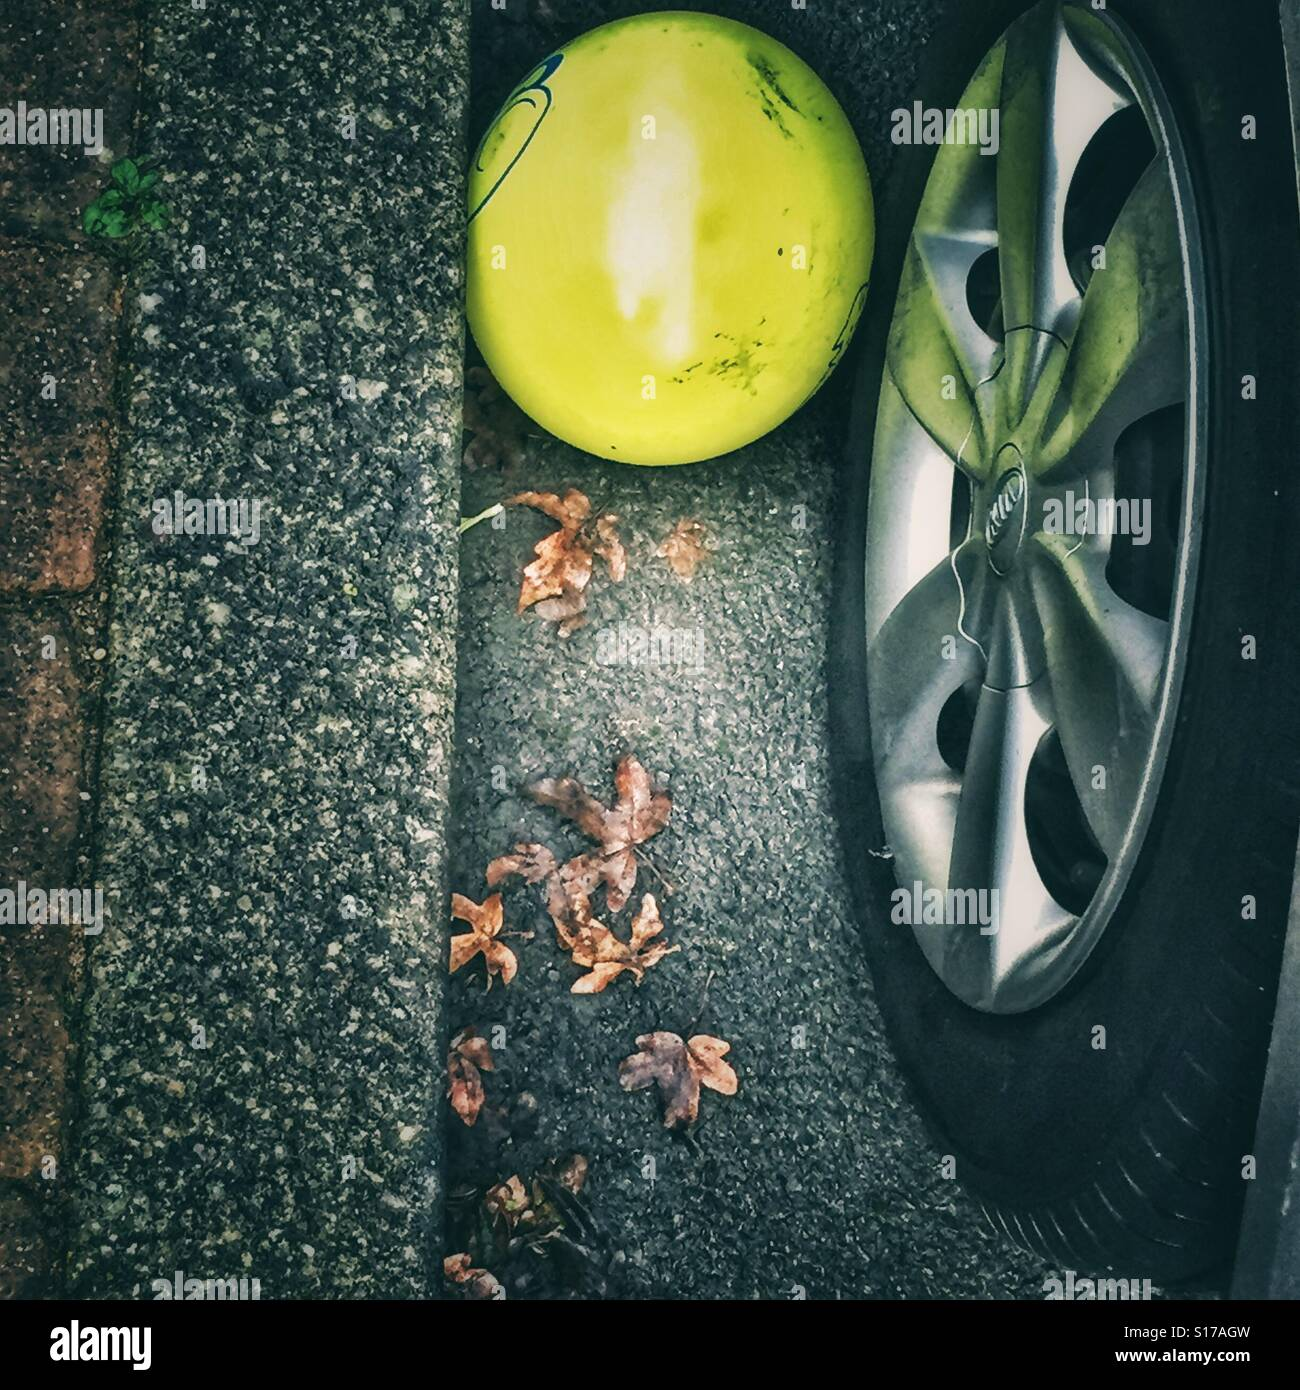 Abandoned Yellow balloon wedged between a tire of a car and a pavement - Stock Image